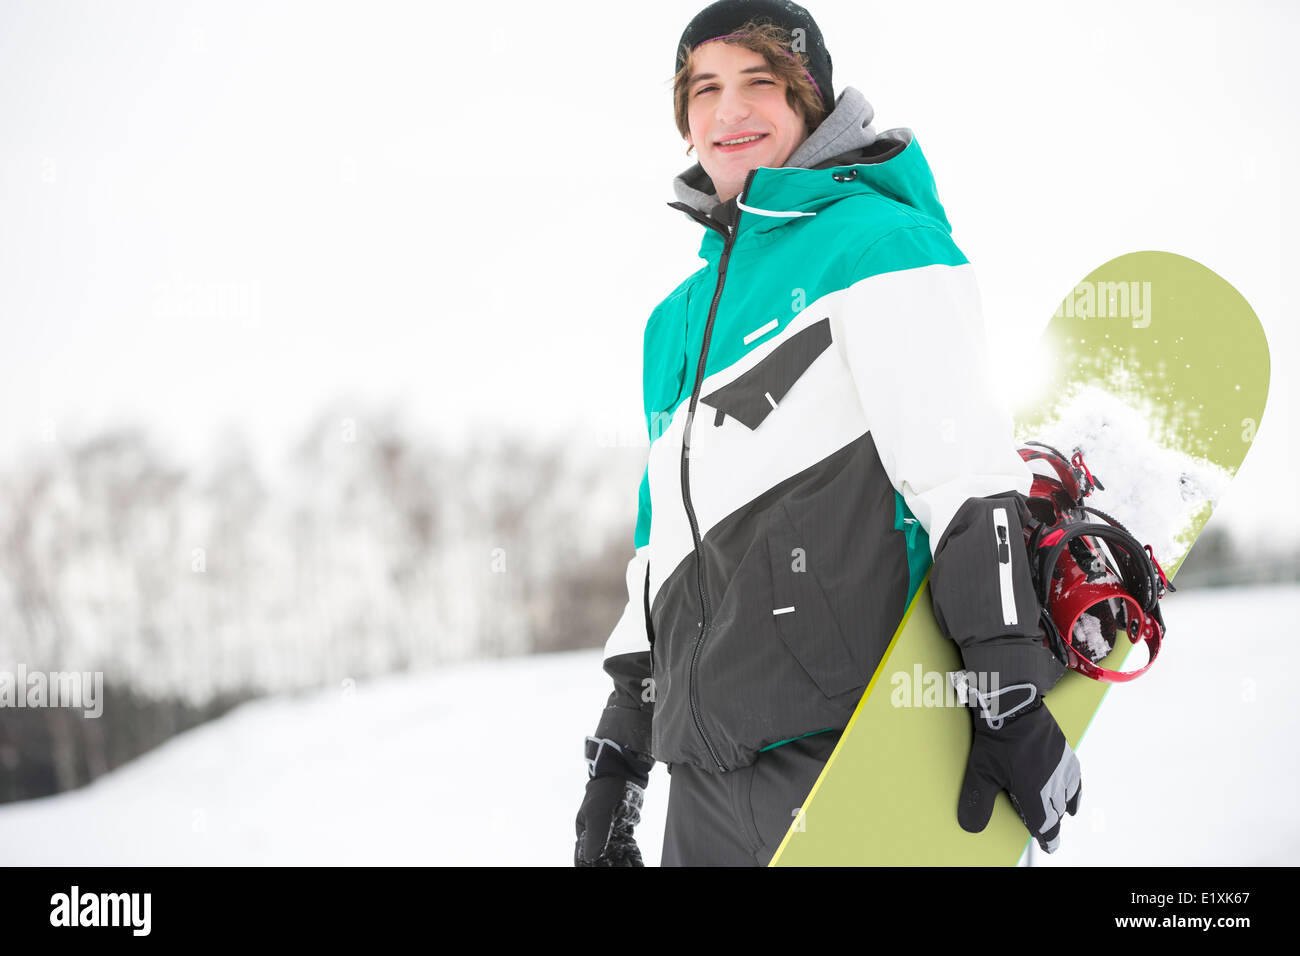 Portrait of handsome young man with snowboard in snow - Stock Image